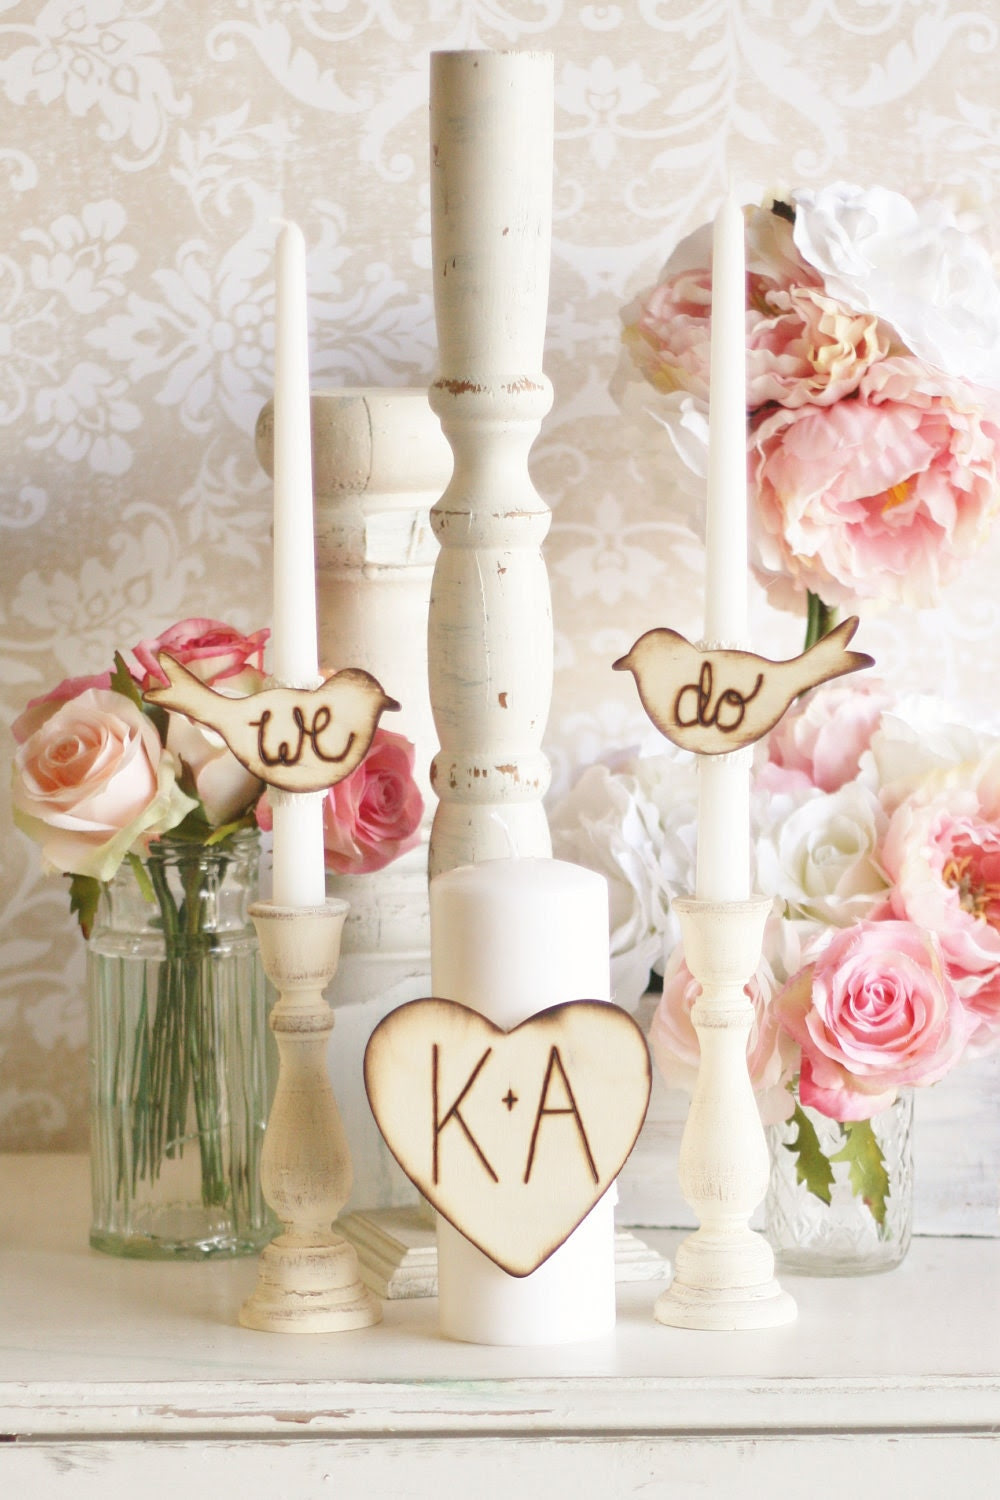 Unity Candle Set With We Do Love Birds And A Personalized Wood Heart Rustic Chic Wedding Decor By Morgann Hill Designs